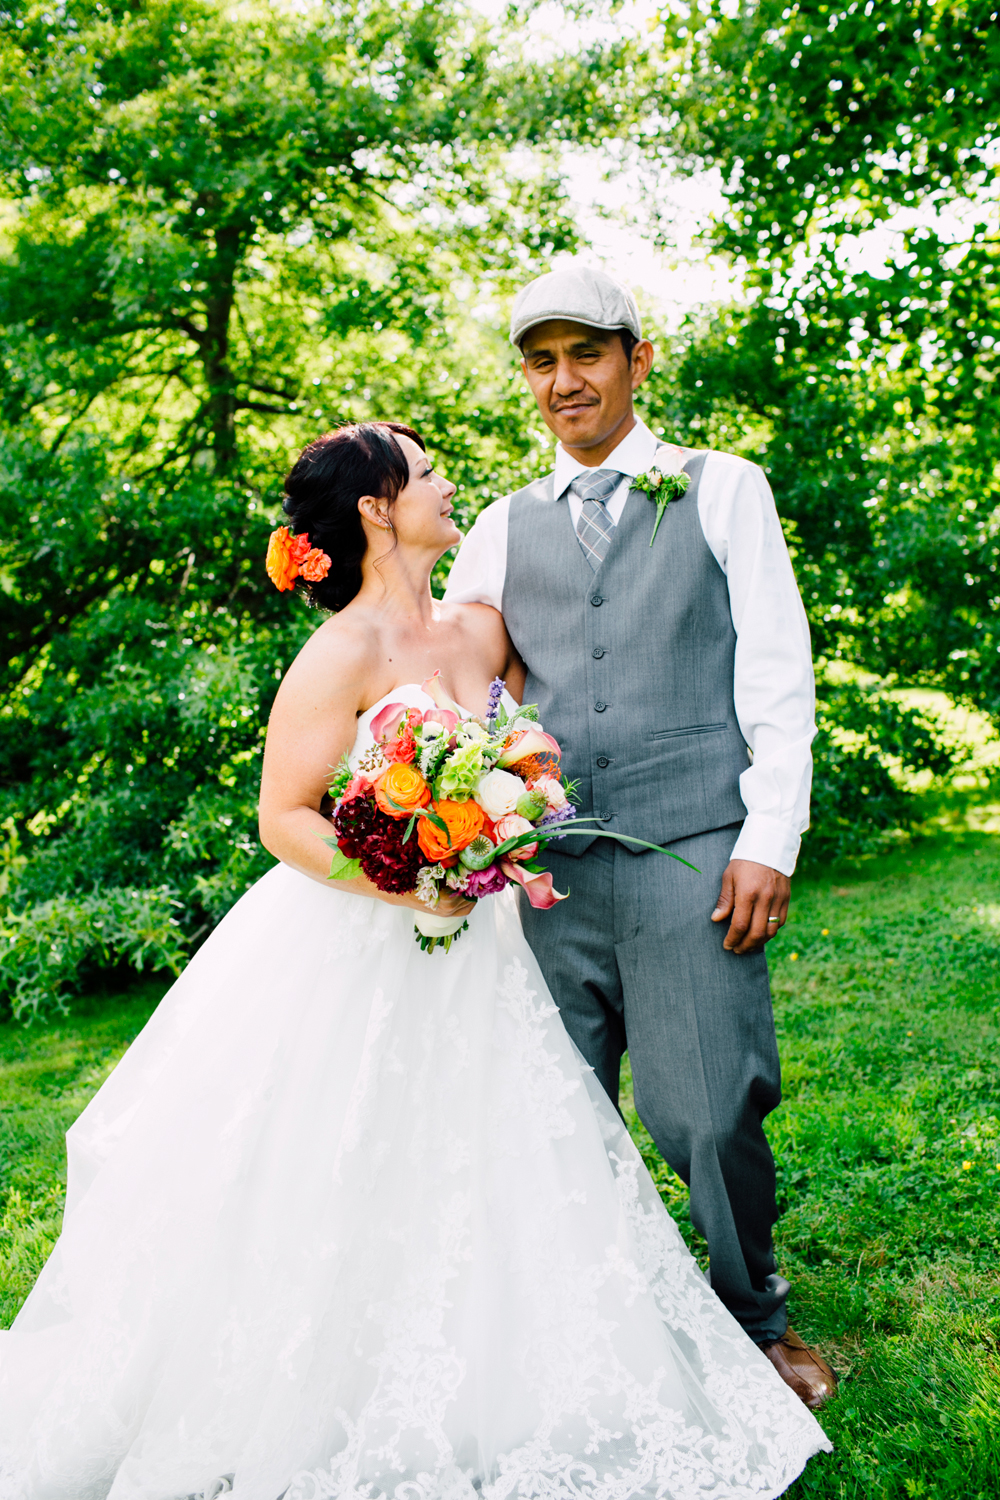 048-snohomish-wedding-photographer-katheryn-moran-jardin-del-sol-angela-luis-garden-wedding.jpg